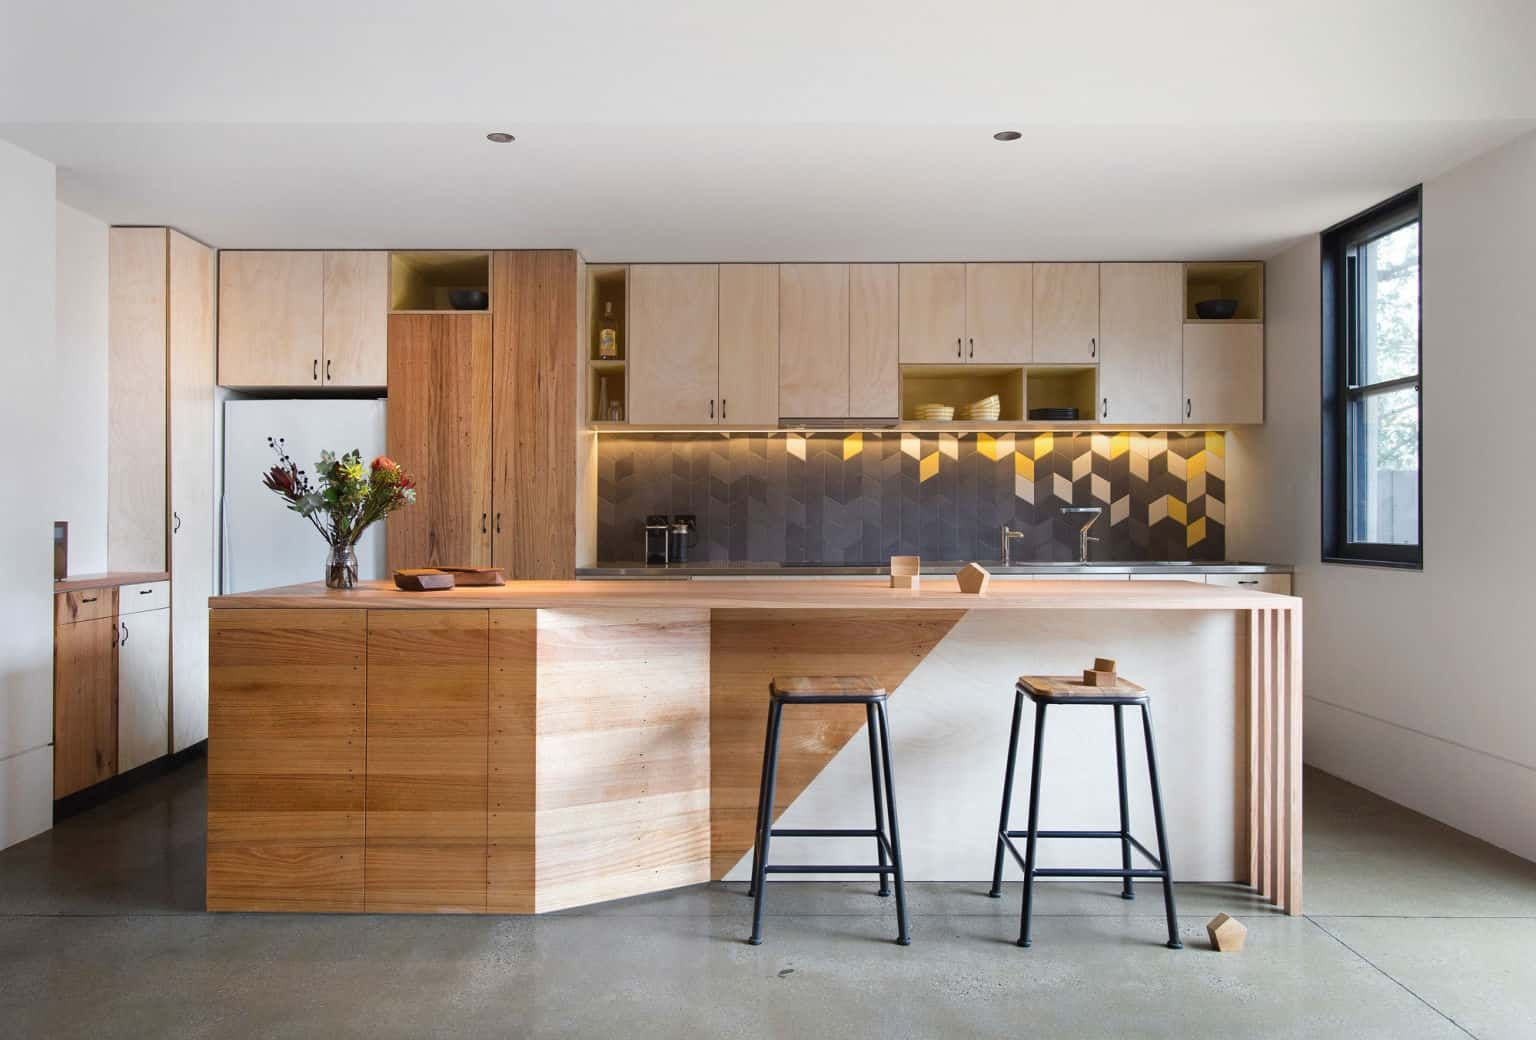 Küchendesign Wuttke 10 Inspiring Modern Kitchen Designs Modern Home Kitchens